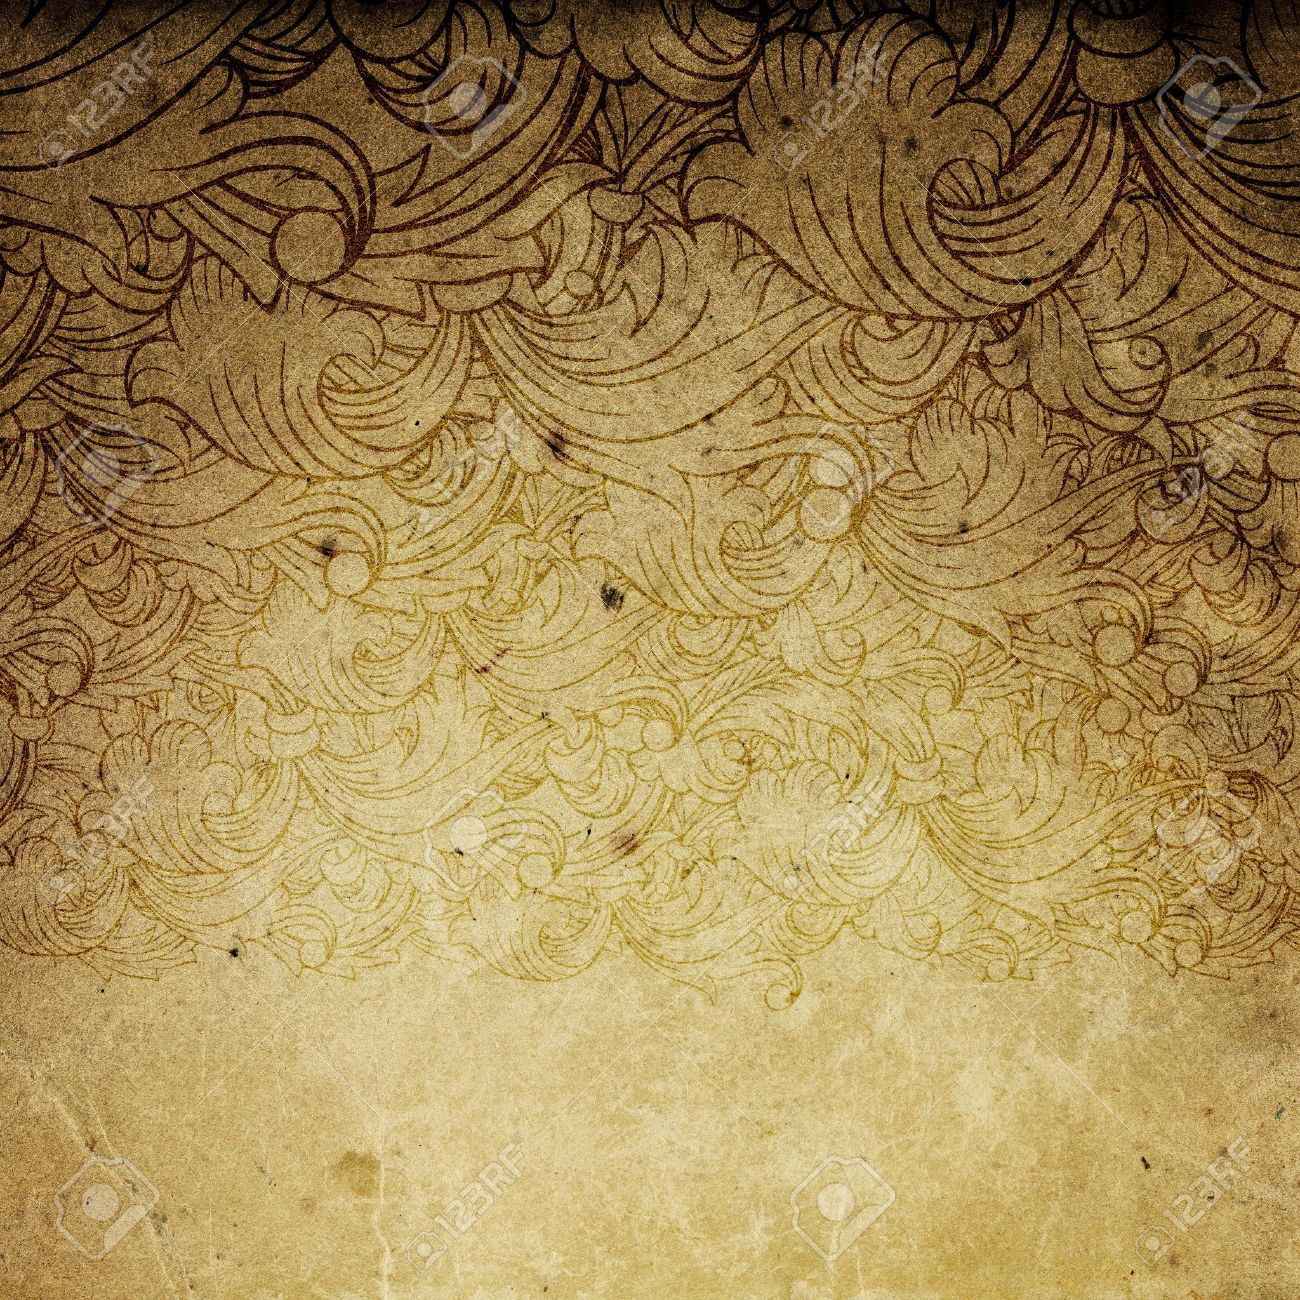 Aged vintage background with floral ornament elements. Stock Photo - 7283225